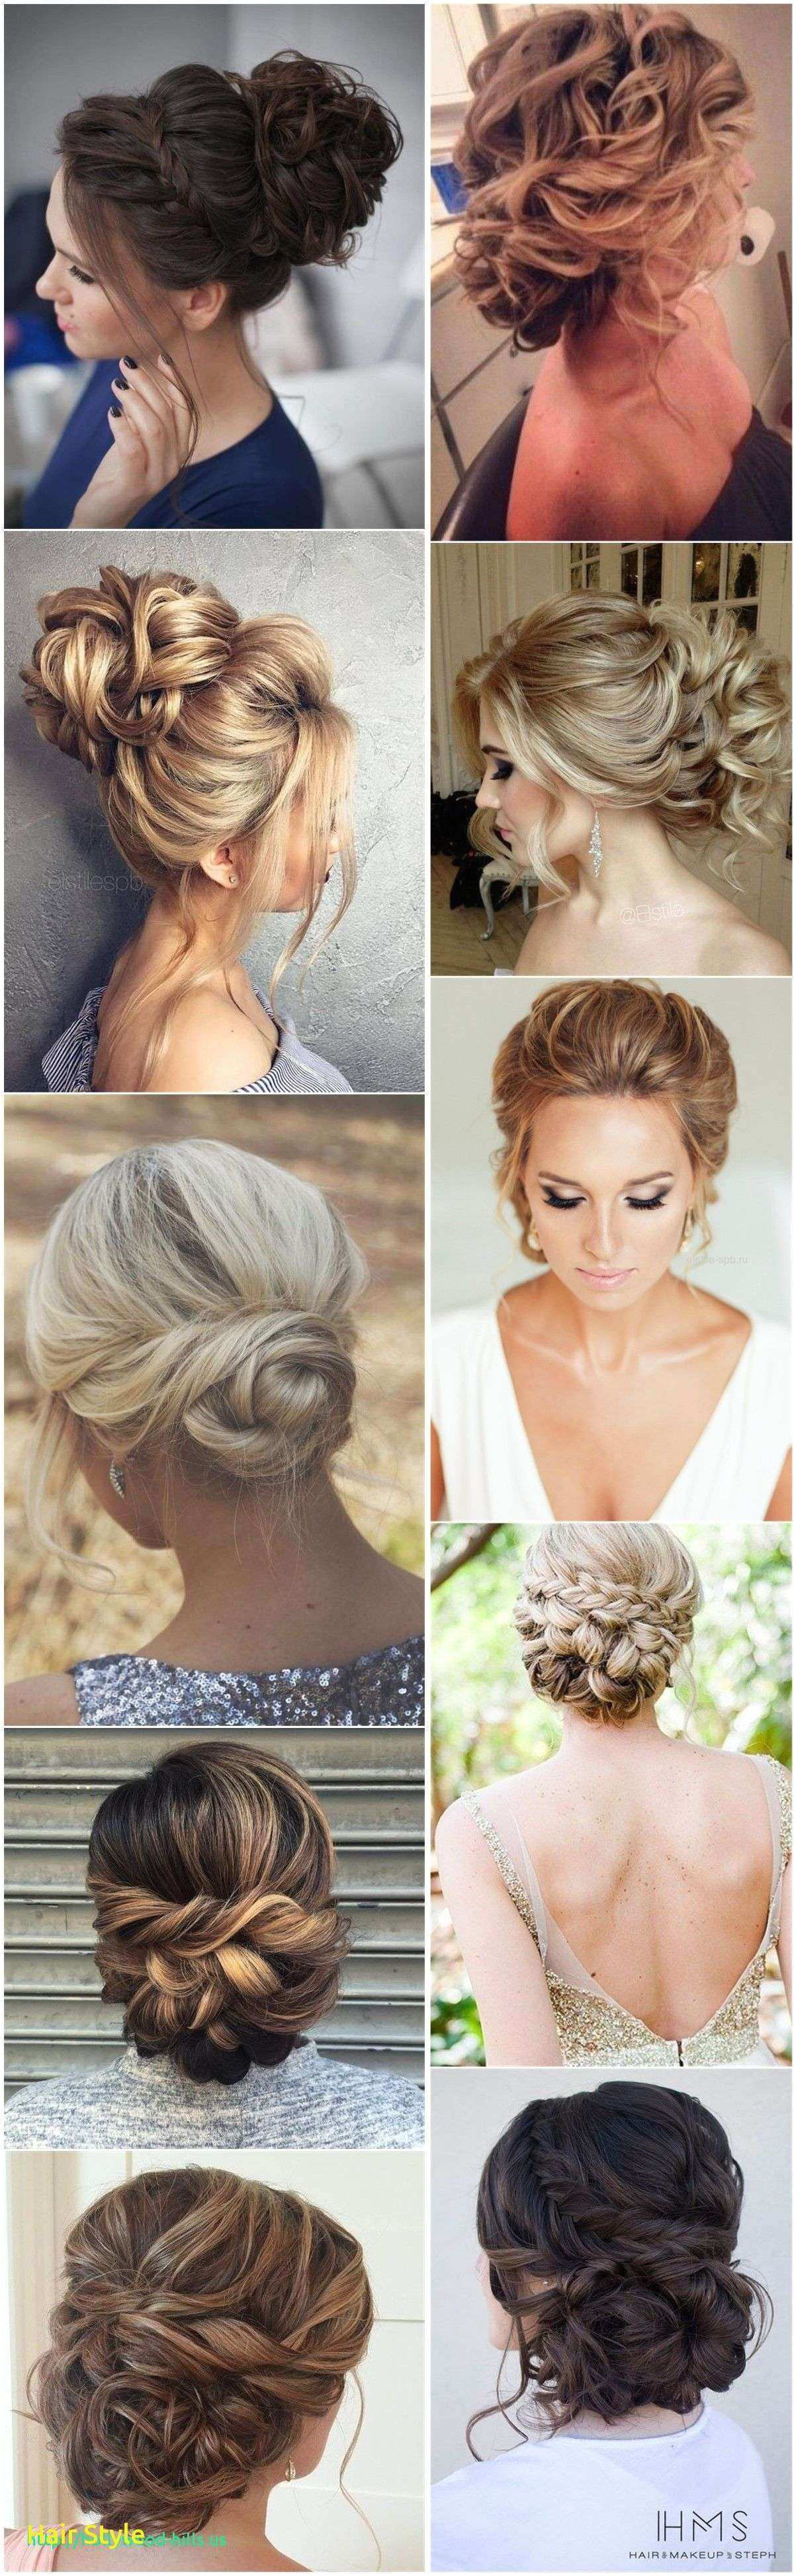 Hairstyles for Girls for Indian Weddings Fresh Wedding Hair Updo Indian Wedding Hairstyles New Lehenga Hairstyle